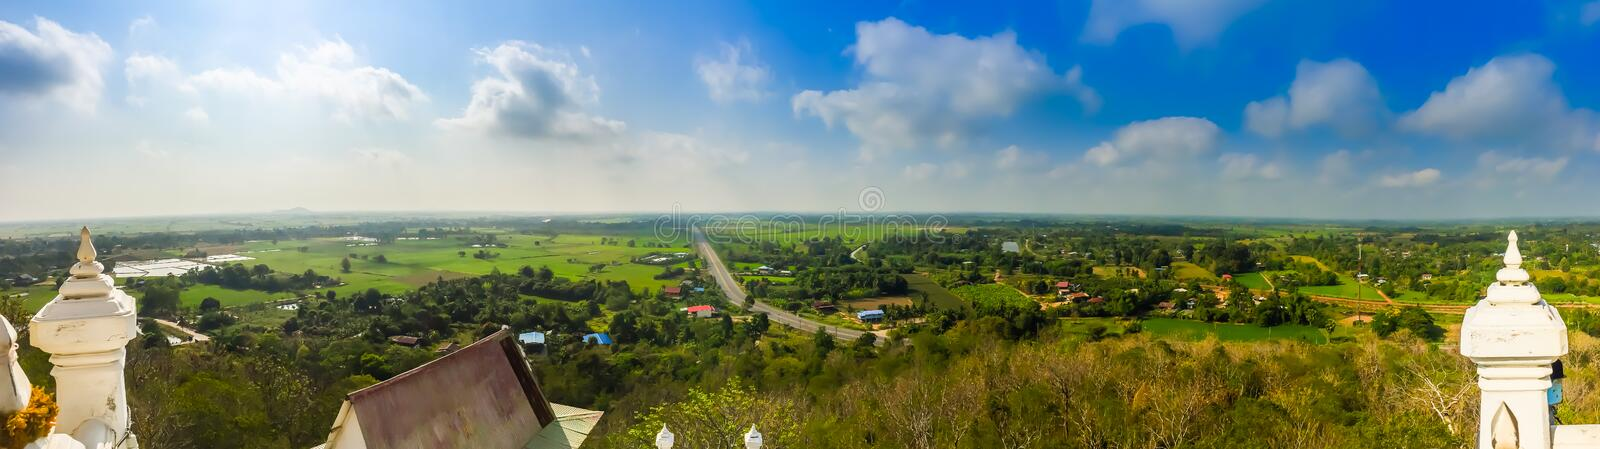 Panorama view over highway from hilltop around with countryside green rice fields and blue sky background. The provincial highway royalty free stock photography